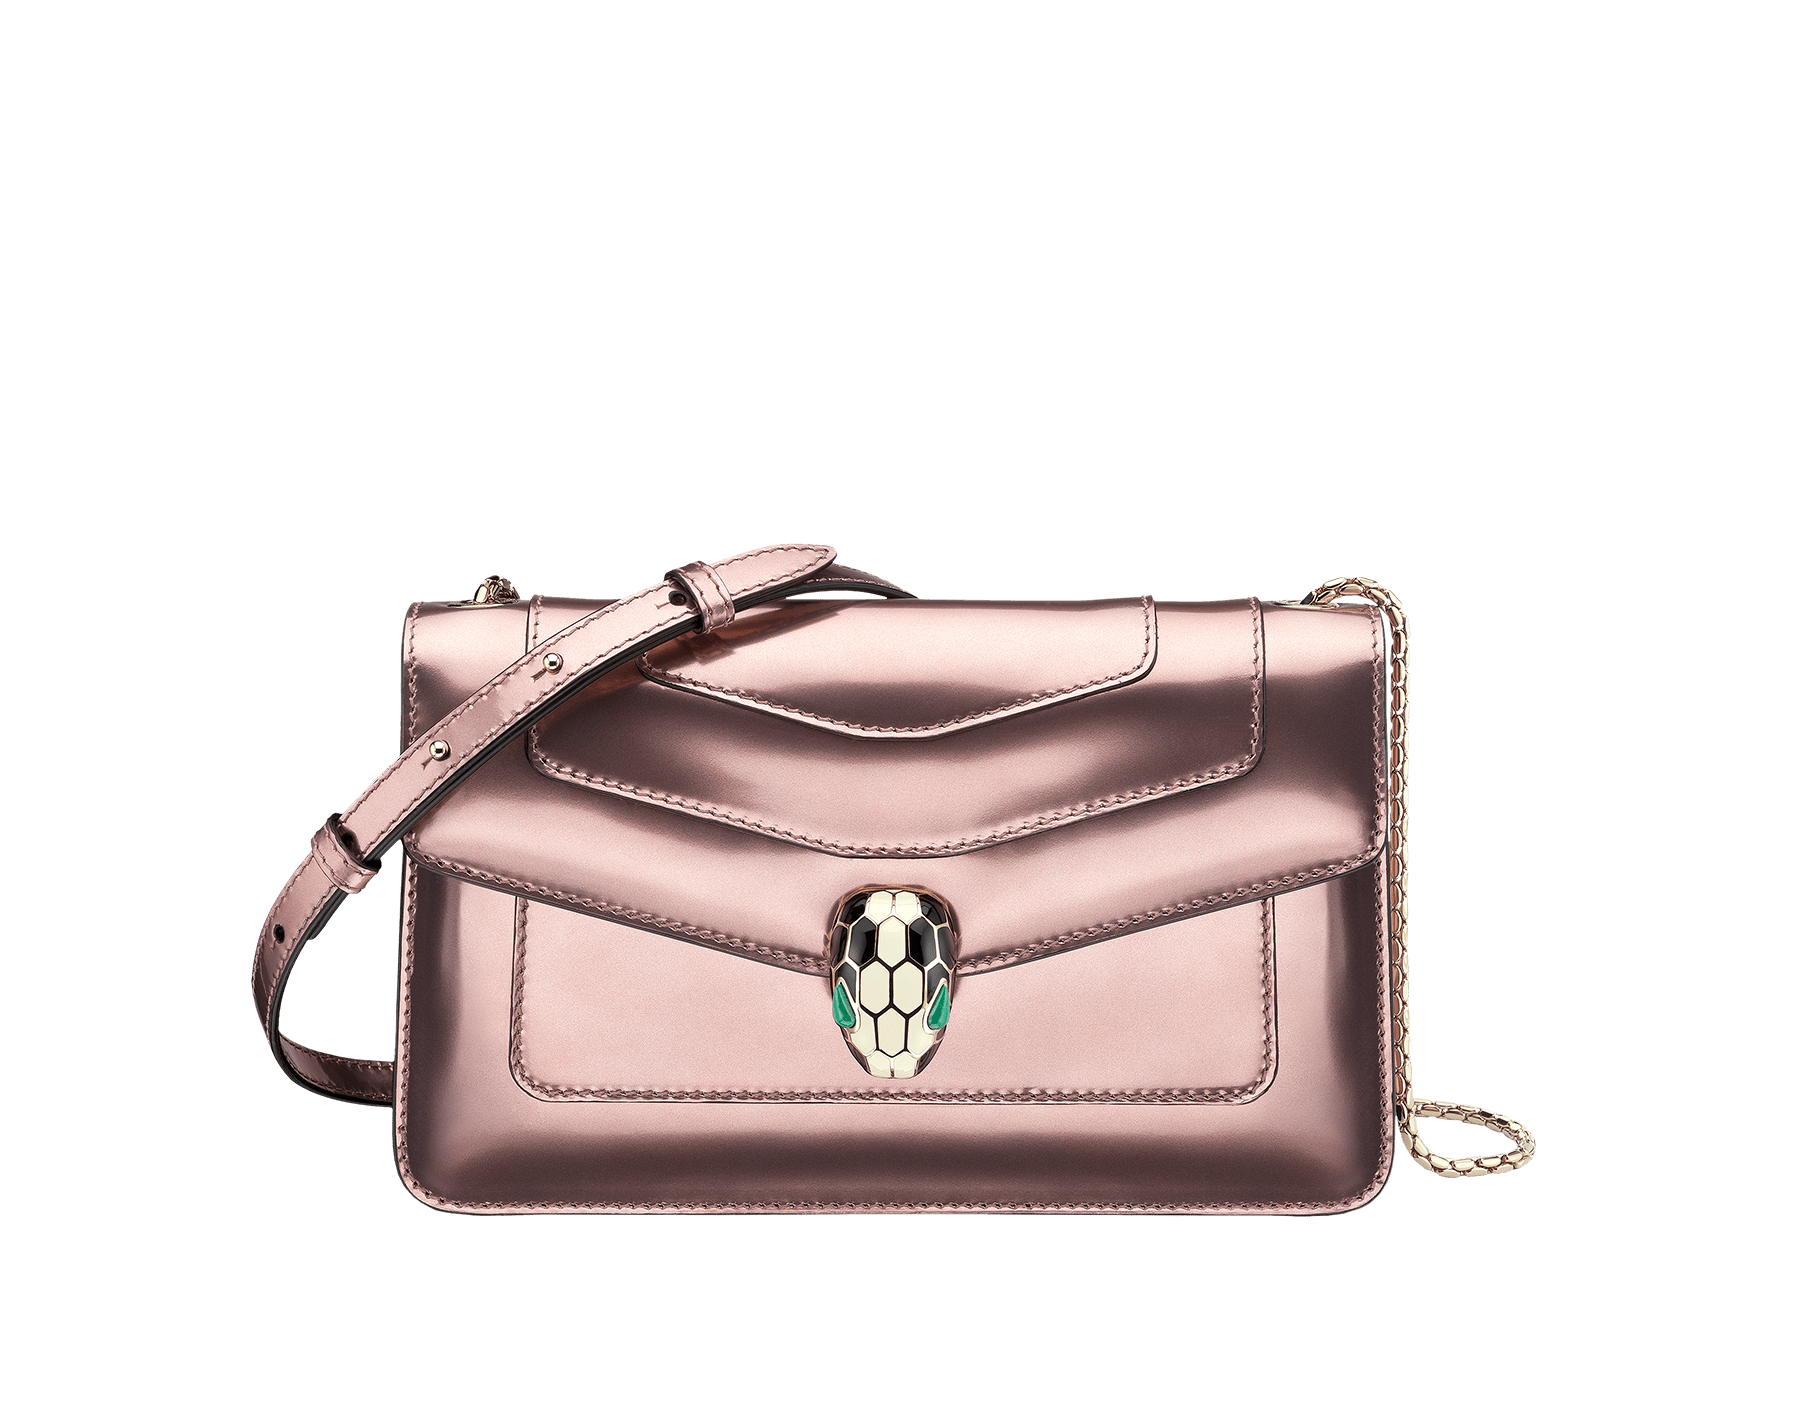 Flap cover bag Serpenti Forever in rose quartz brushed metallic calf leather. Brass light gold plated snake head closure in black and white enamel, with eyes in green malachite. 284801 image 1